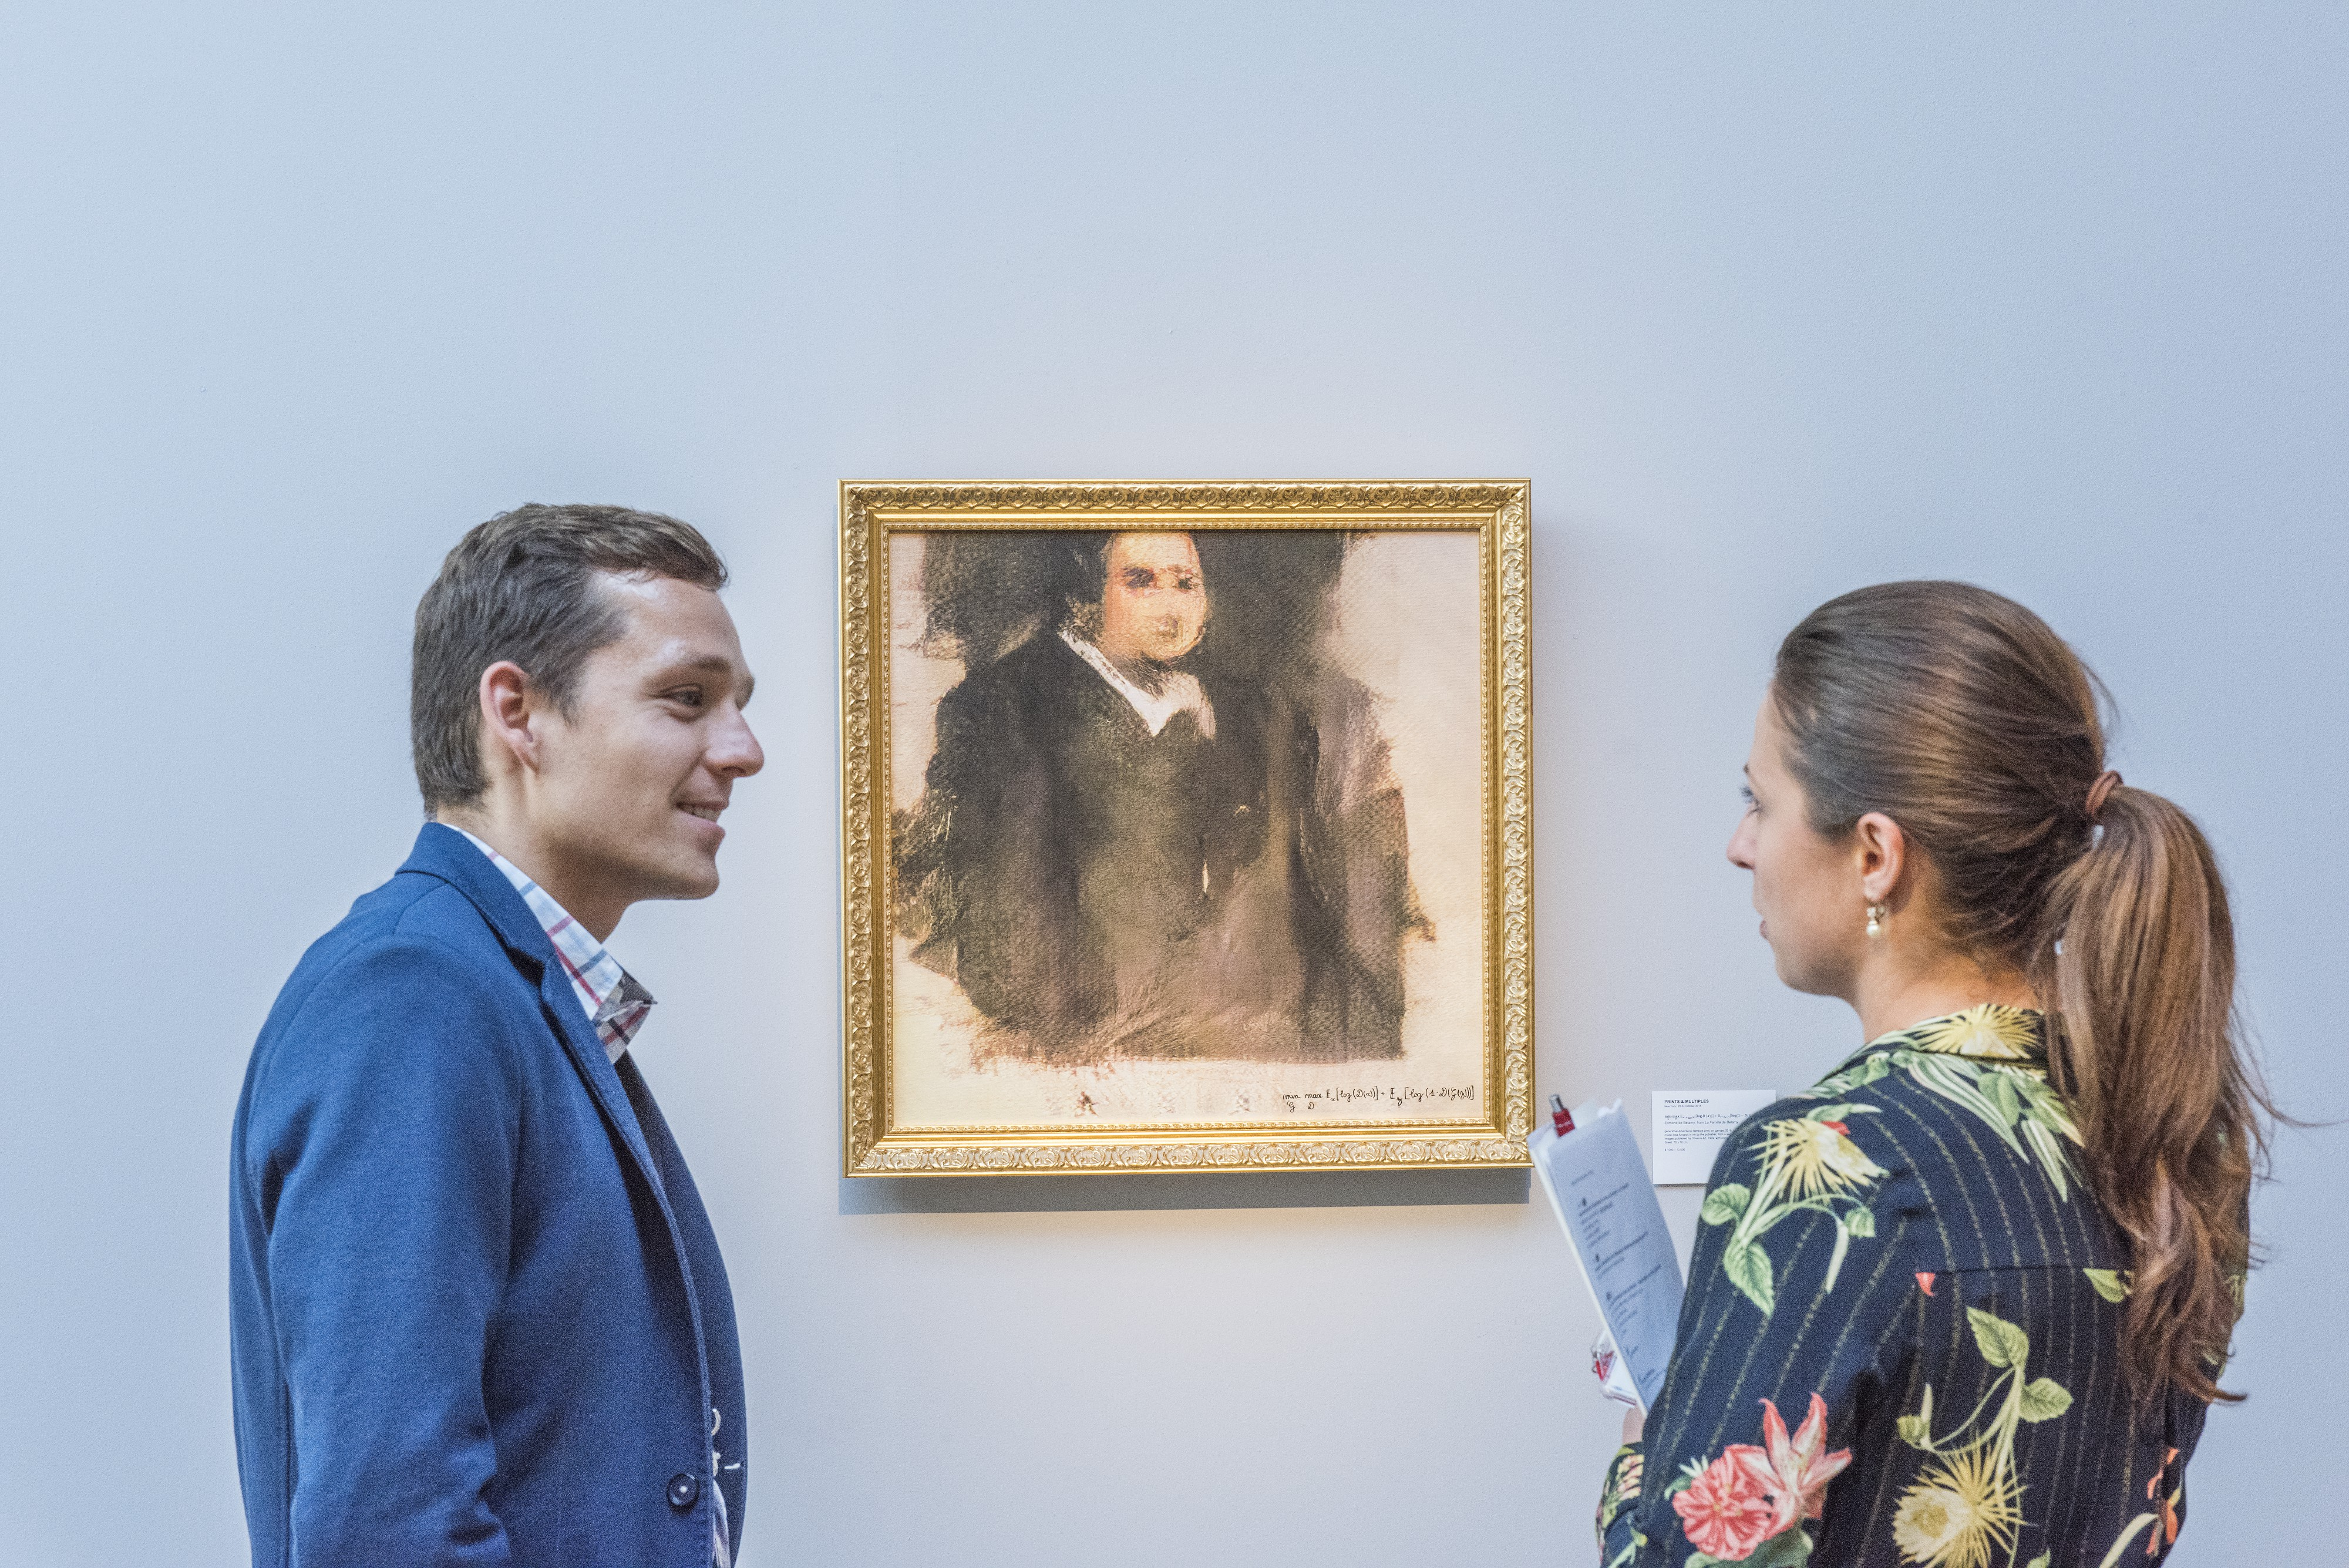 Edmond de Belamy, which goes on sale at Christie's in New York in October, hangs in the auction house's London Gallery in July